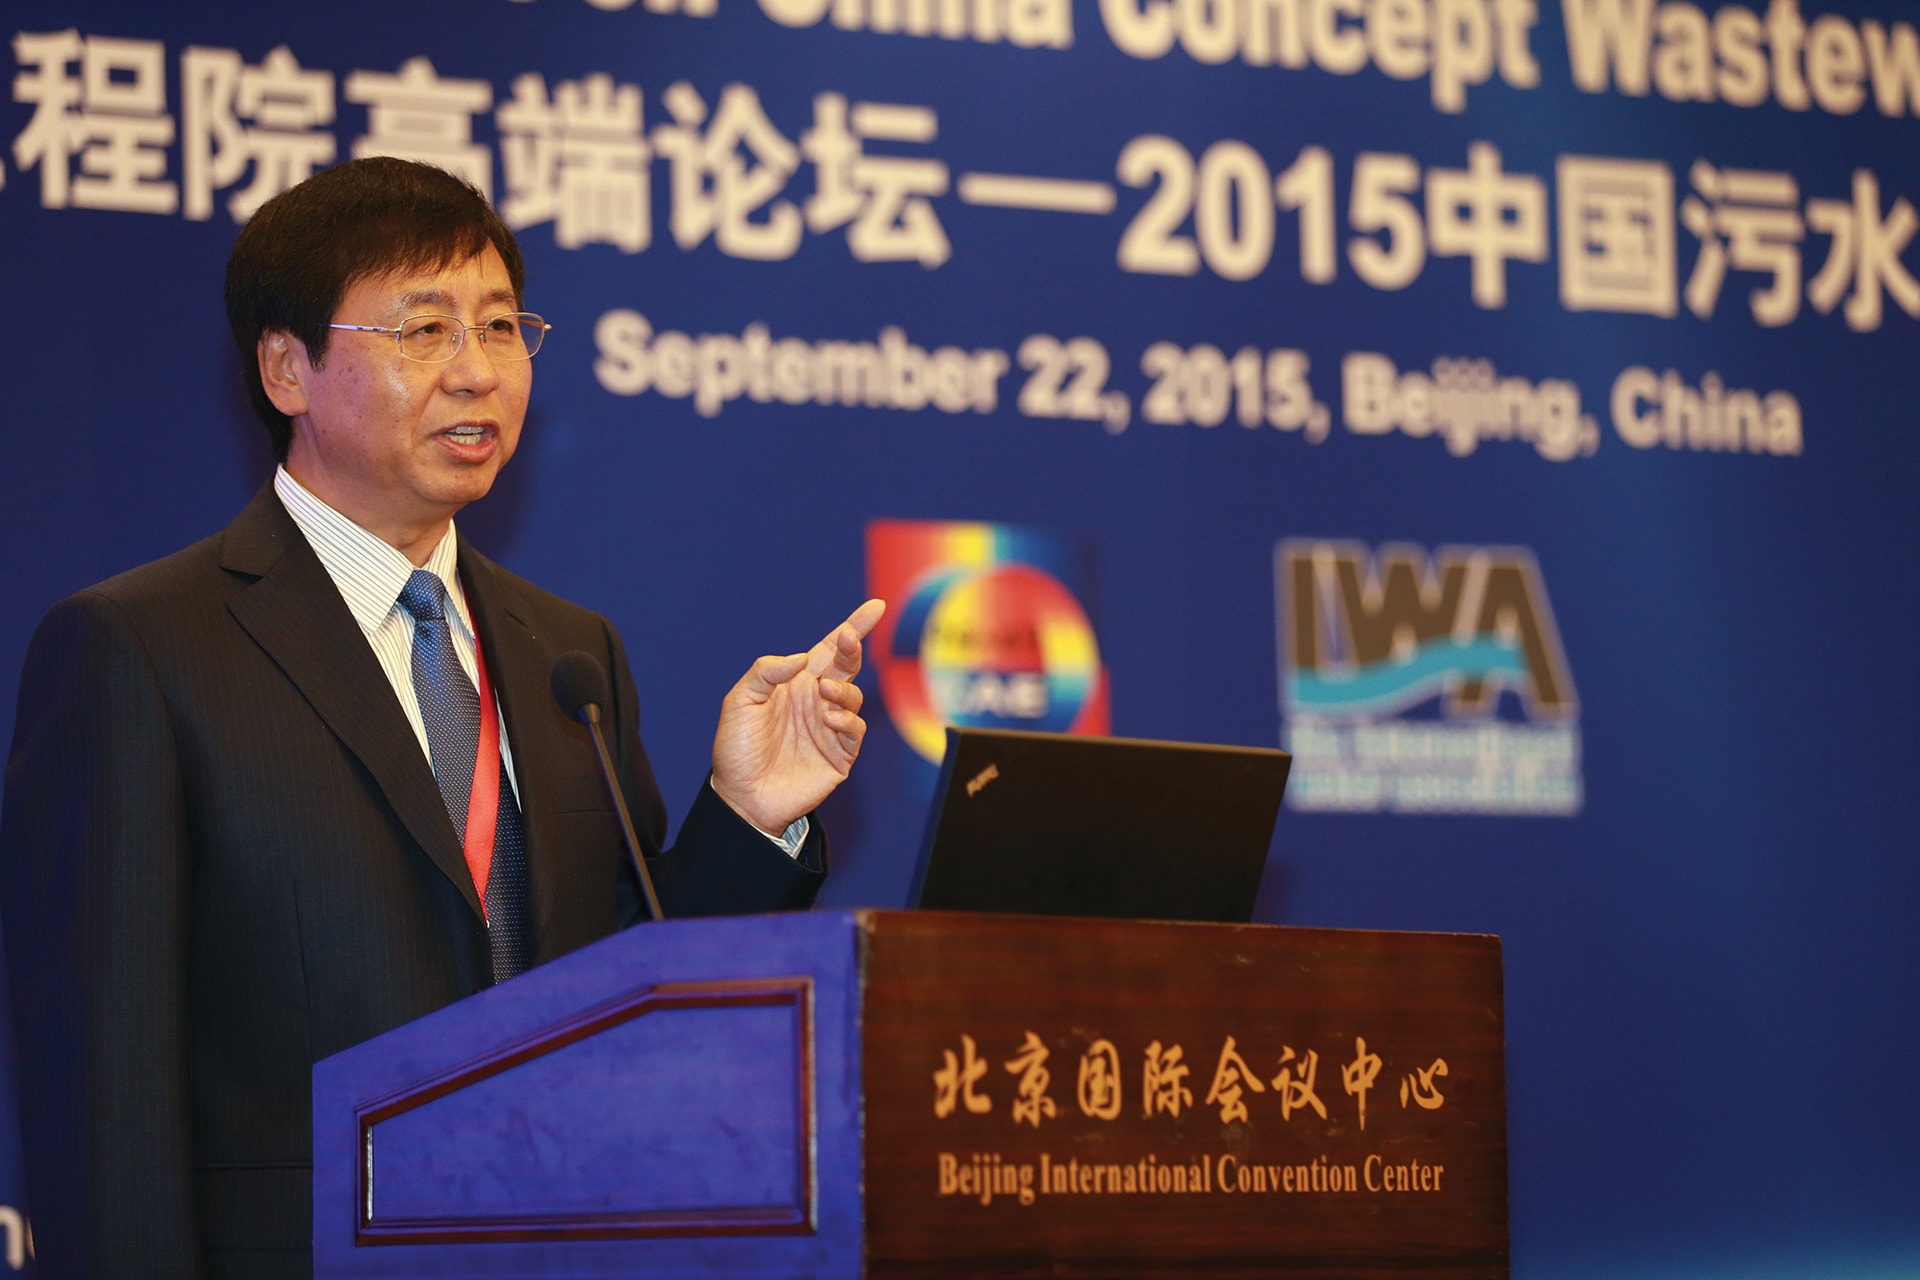 Jiuhui Qu, Director, Research Centre for Eco-Environmental Sciences, China © IWA